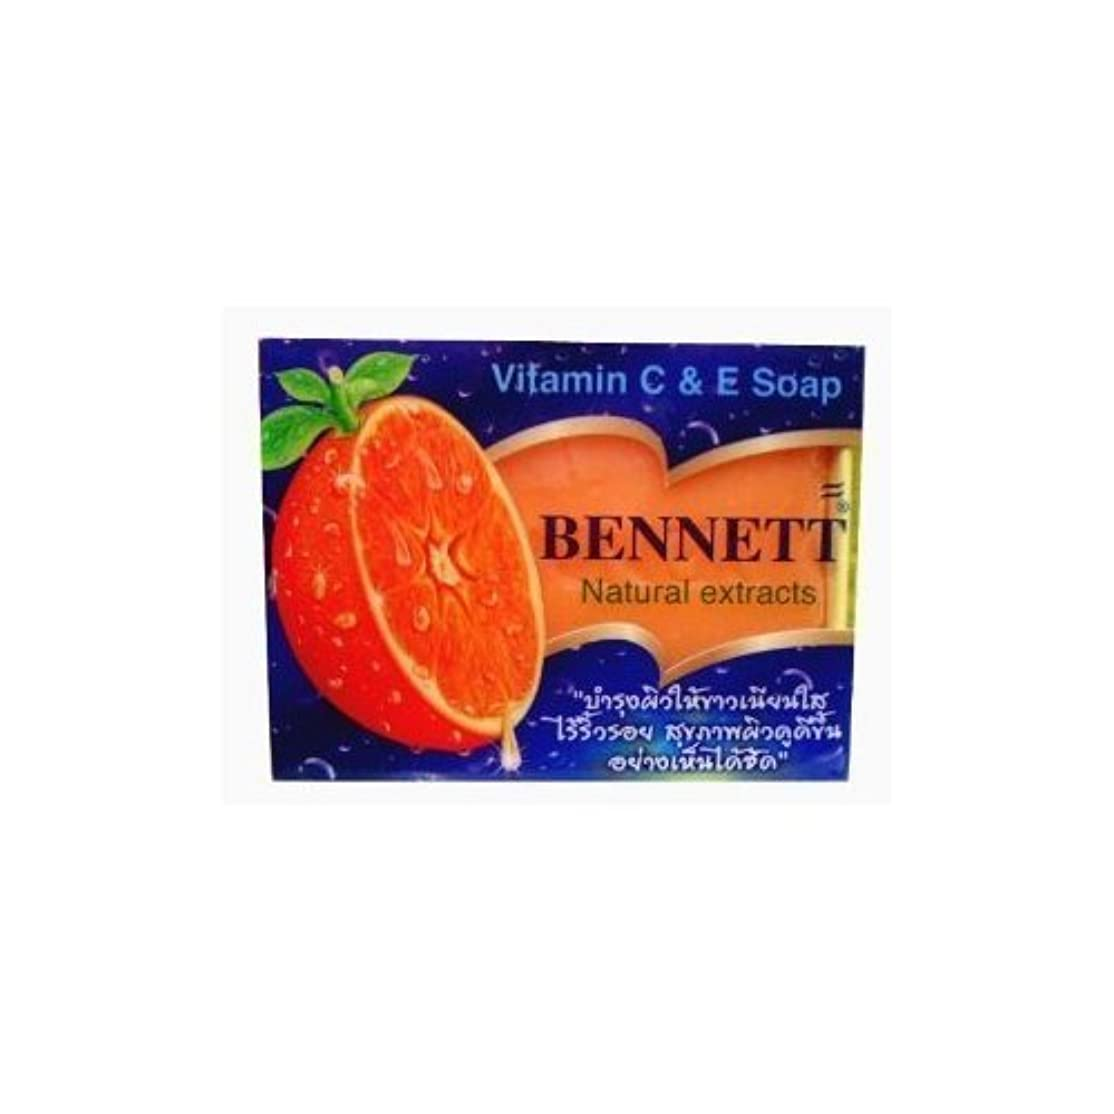 敬なアーチスーツHigh Vitamin Fruit Extract Body and Face Bar Spa Soap 4.59 0z, Enriched Vitamin C & E Skin Smooth & Anti Acne...